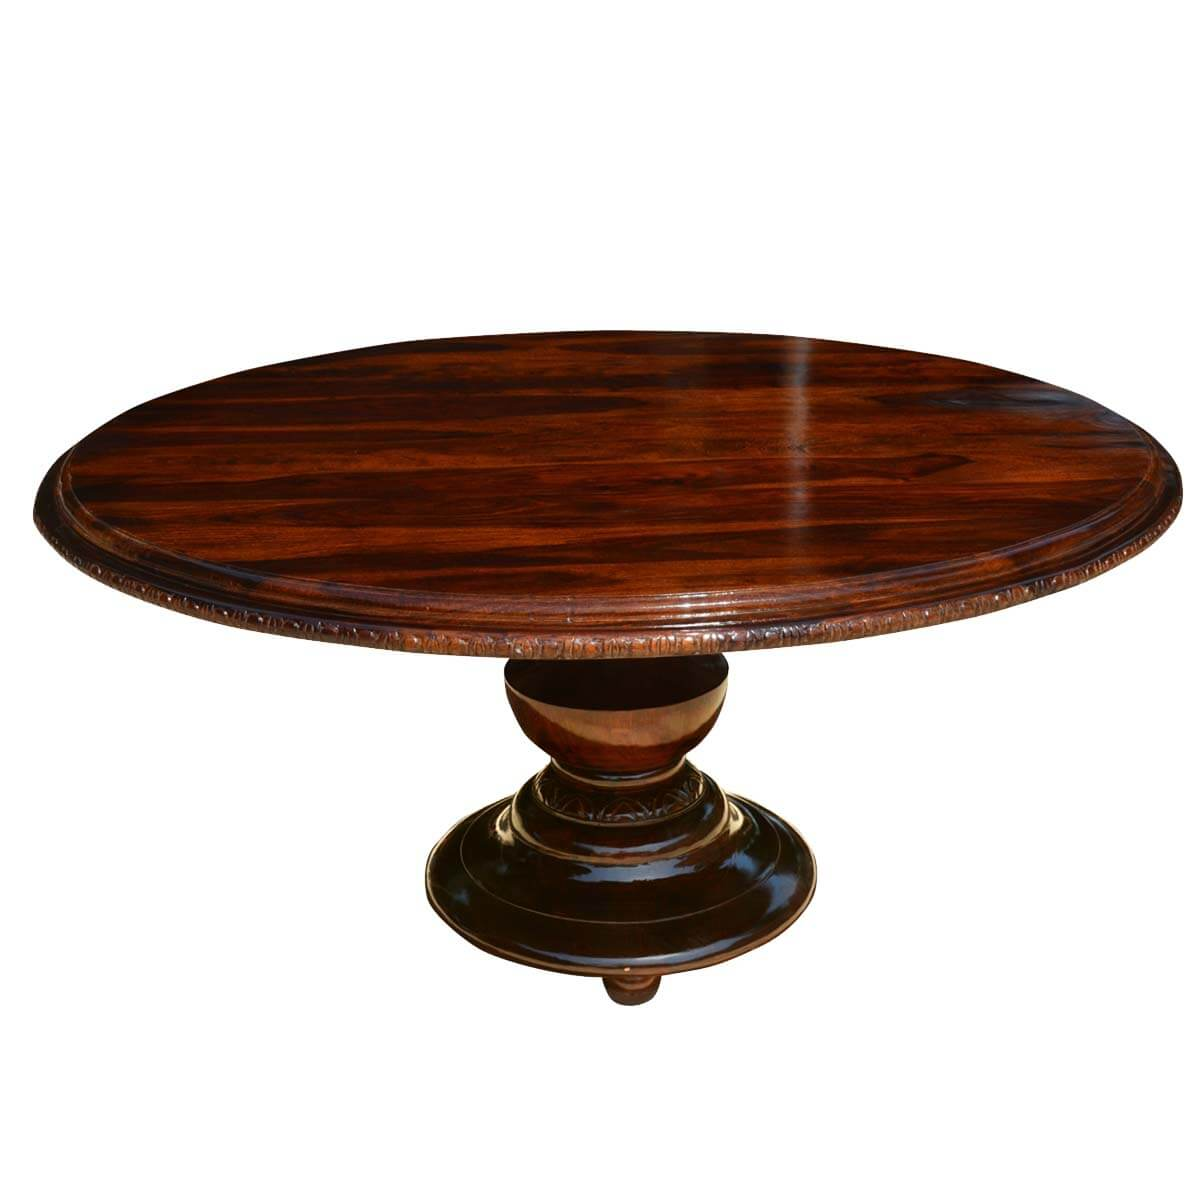 Dining Room Dining Tables Rustic Solid Wood Pedestal Round Dining